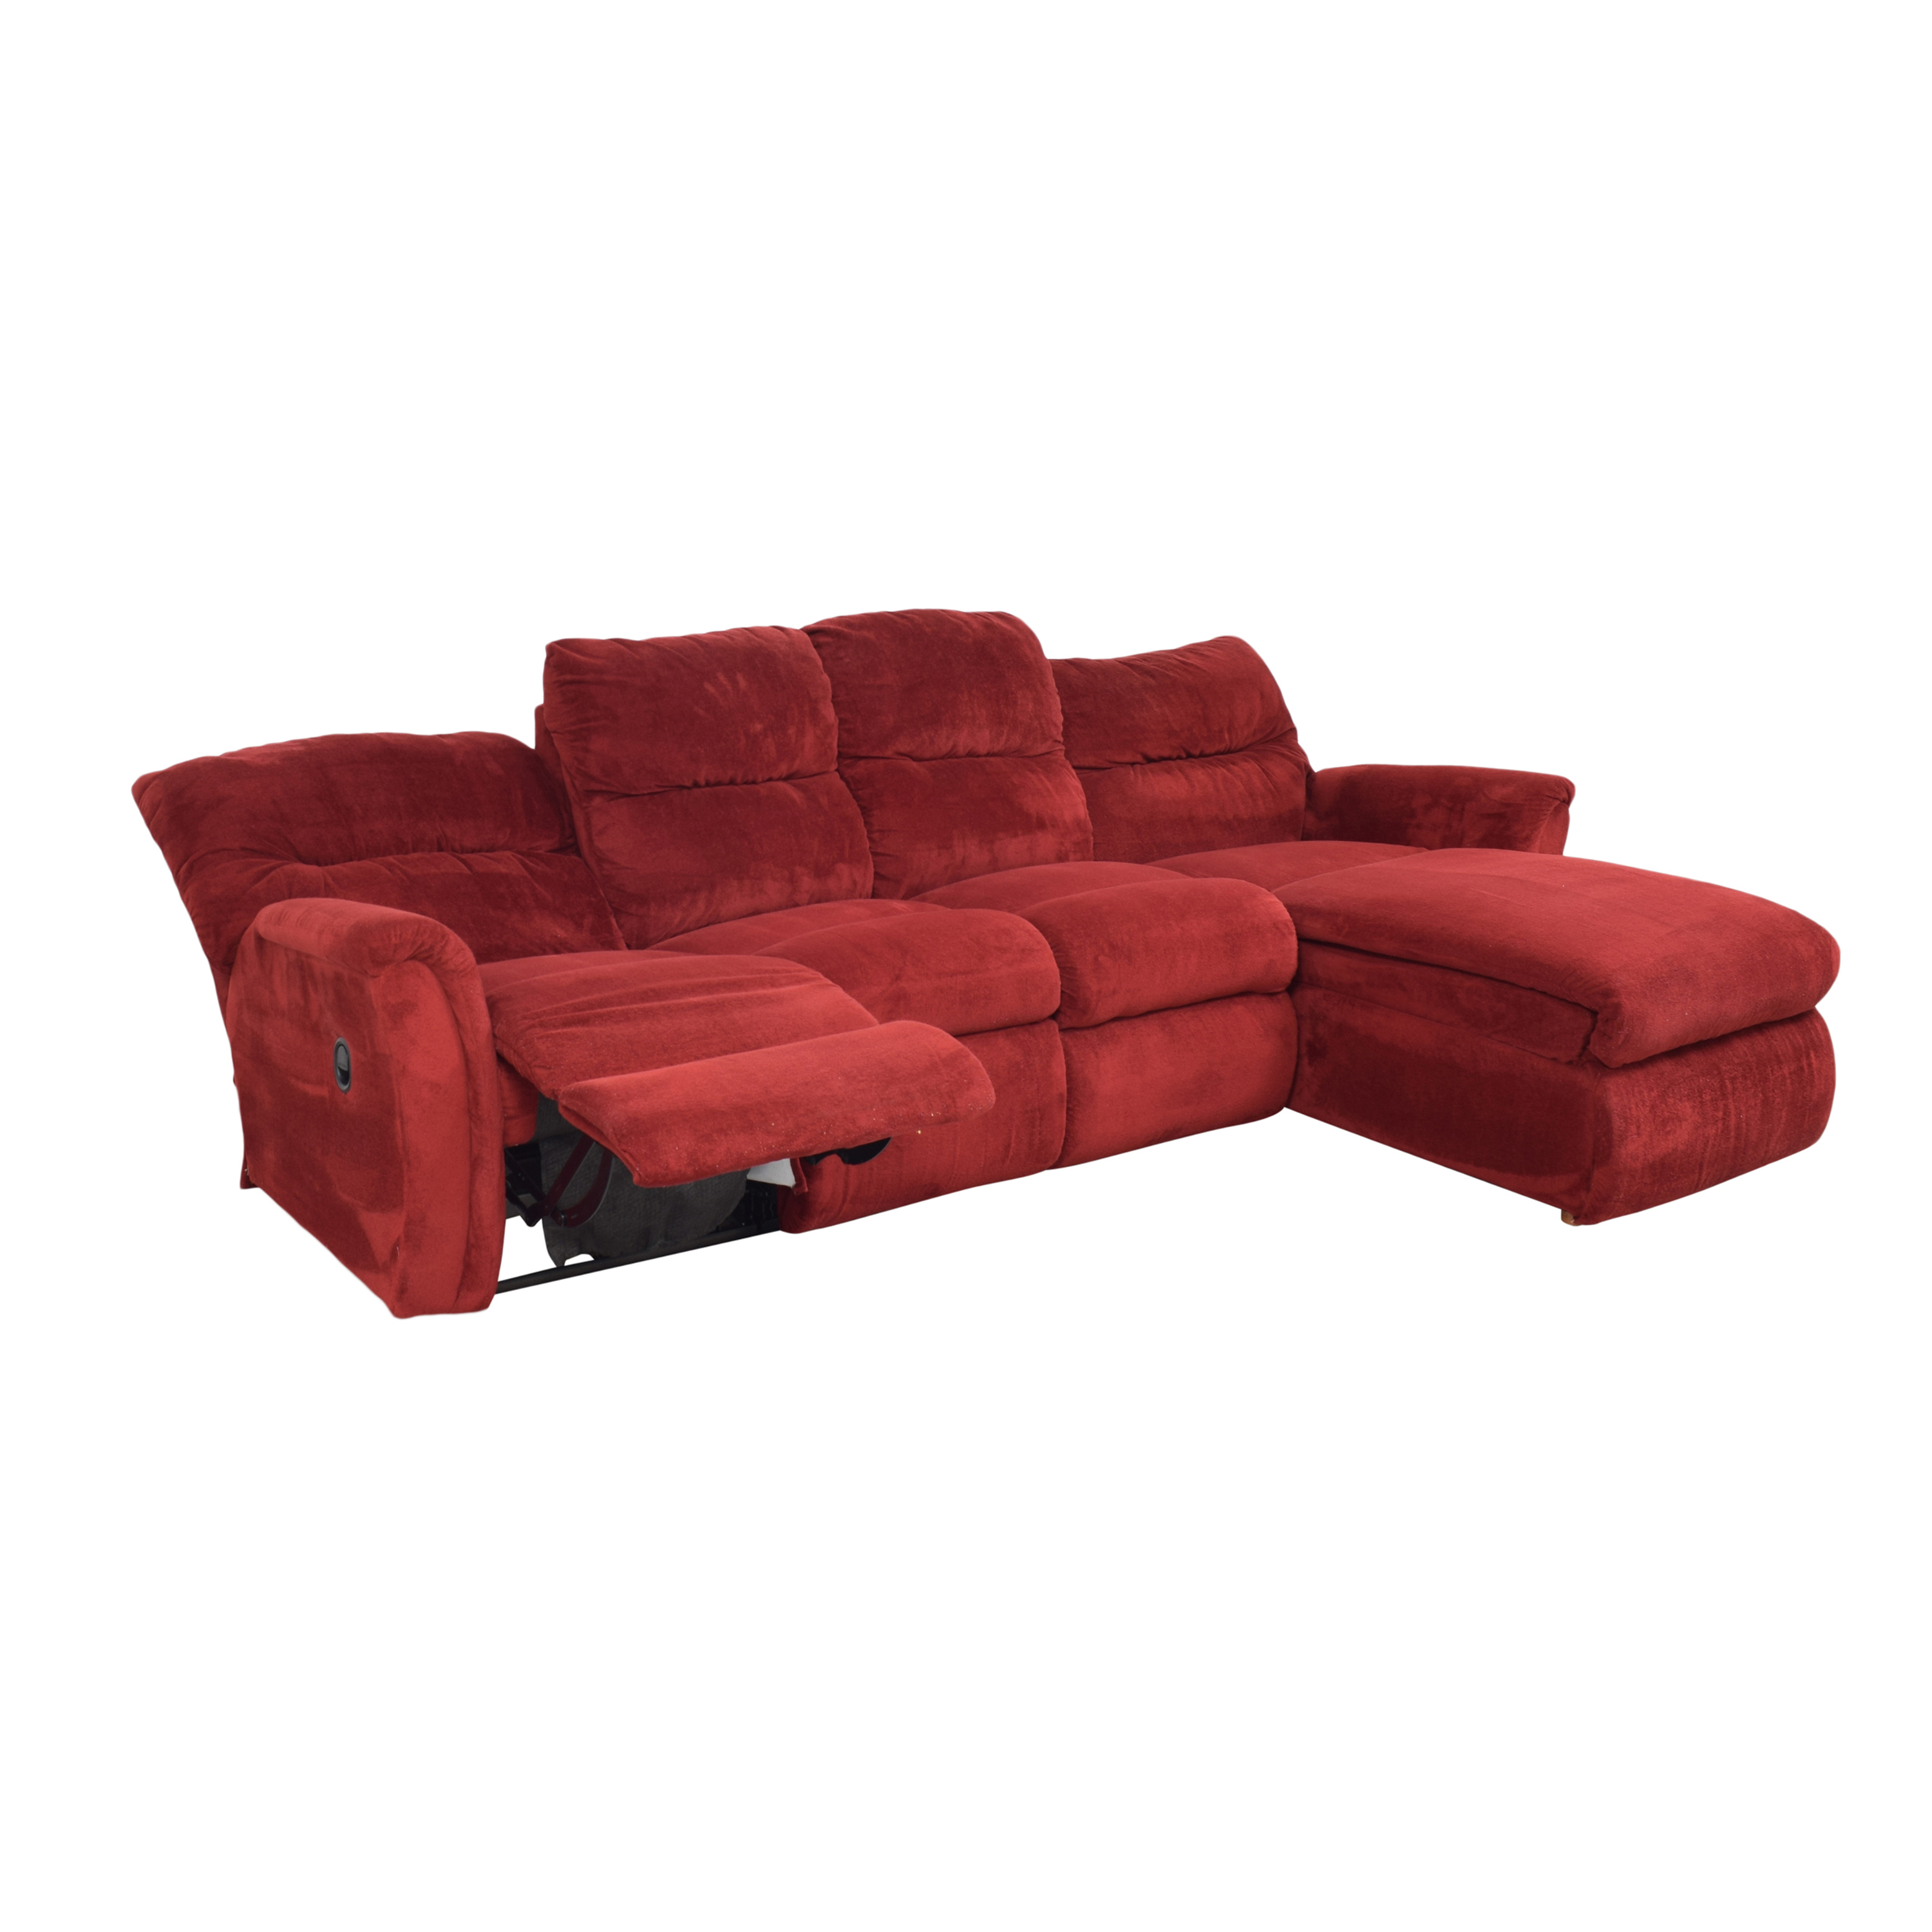 La-Z-Boy Reclining Chaise Sectional Sofa / Sofas